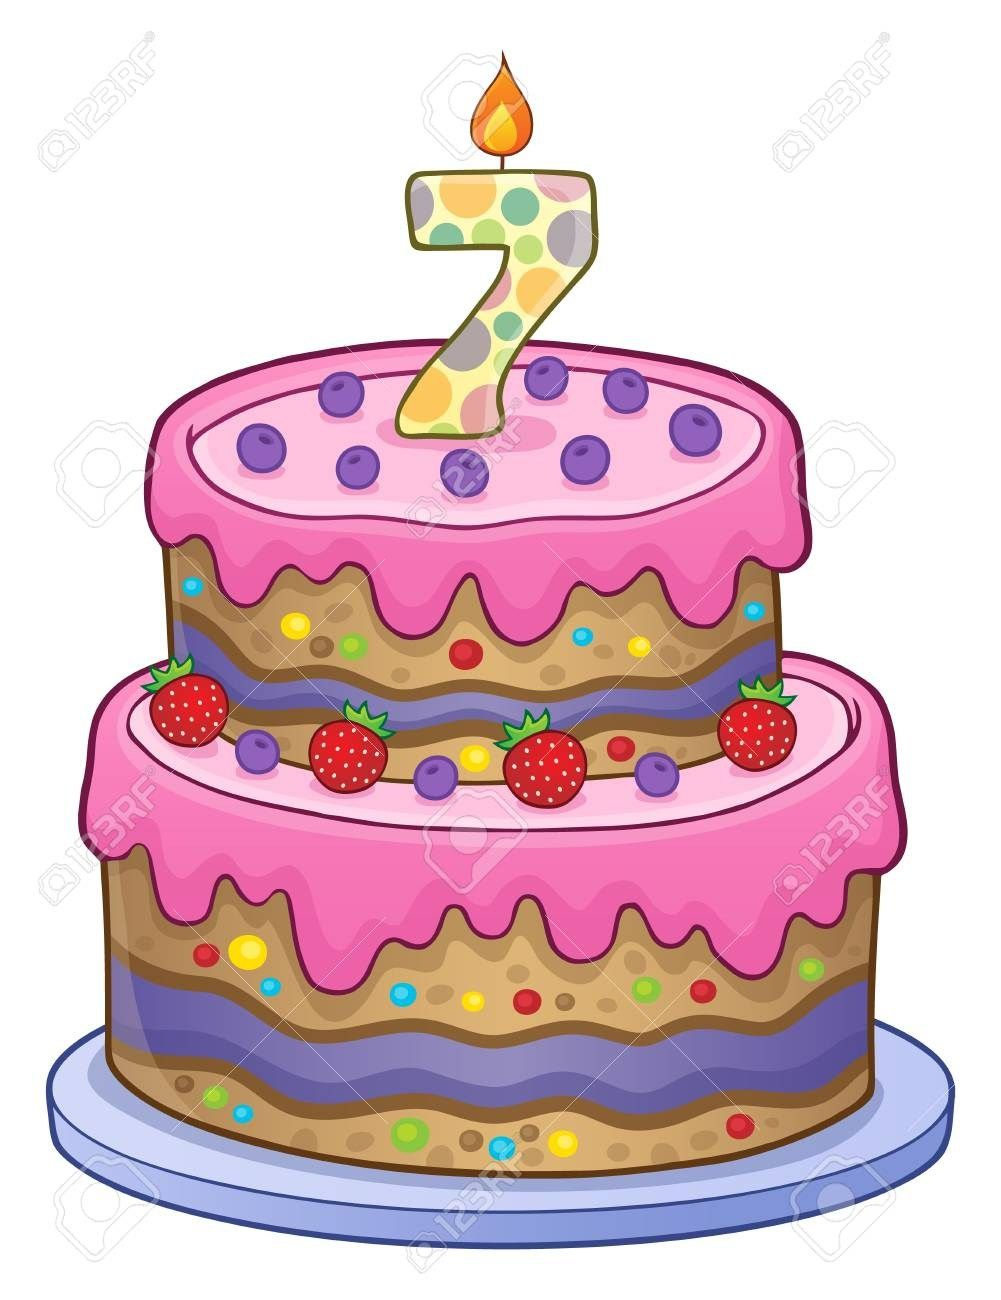 32+ Exclusive Picture of 7 Year Old Birthday Cake | Best Birthday ... clip art download